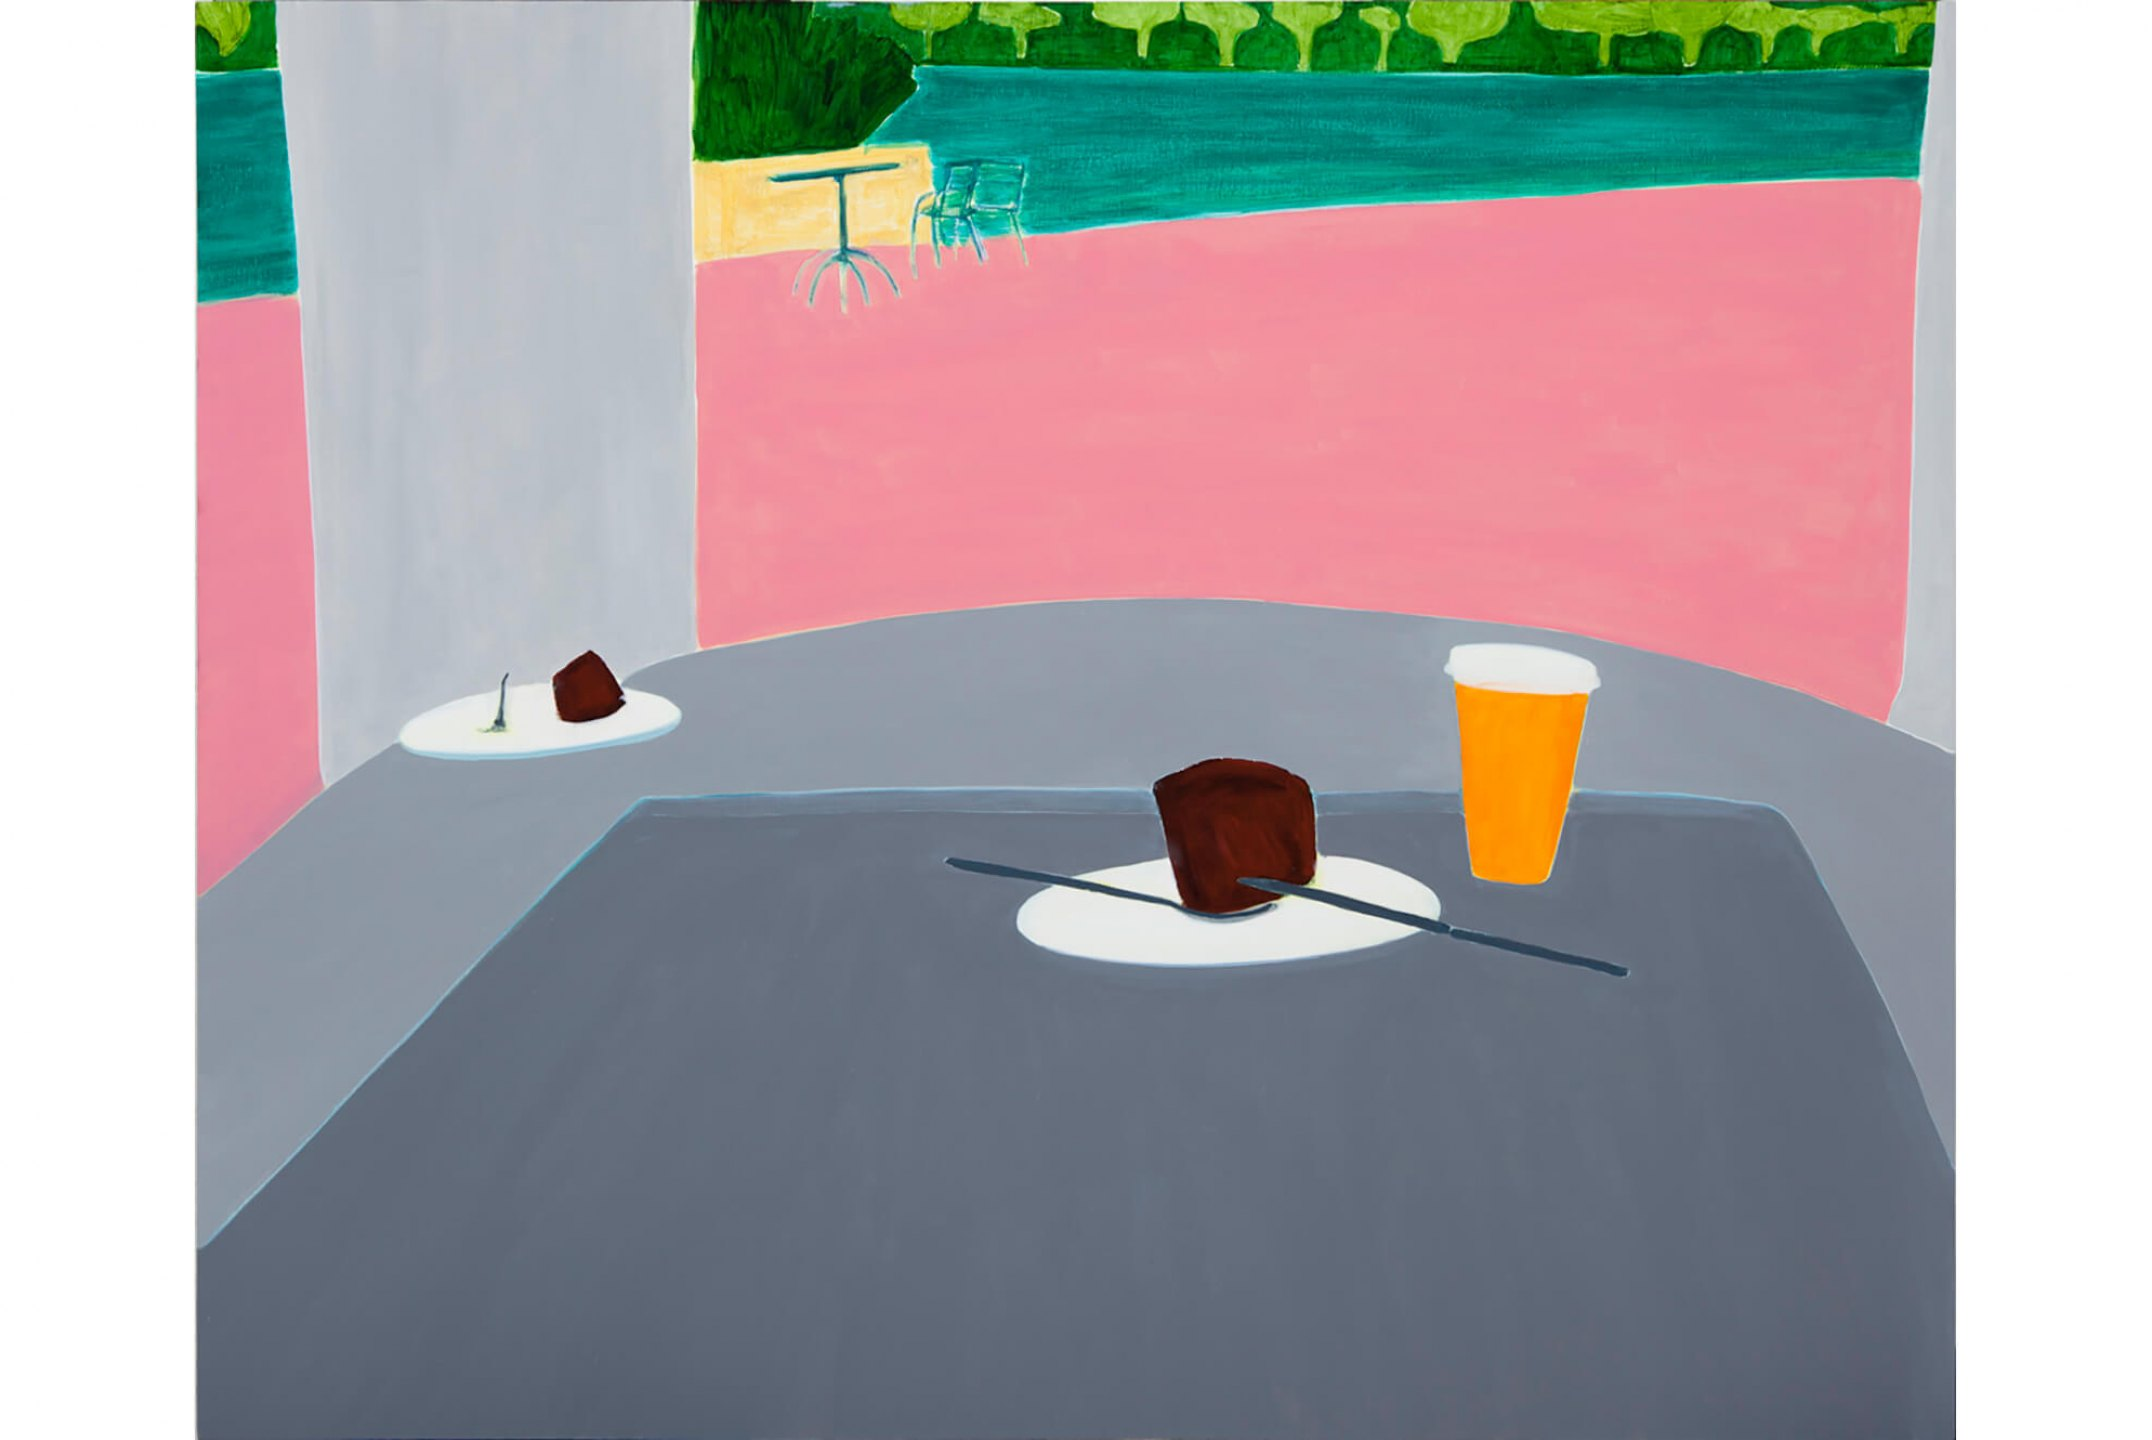 Patricia Leite, <em>Lanche,</em> 2012, oil on wood, 90 × 110 cm - Mendes Wood DM